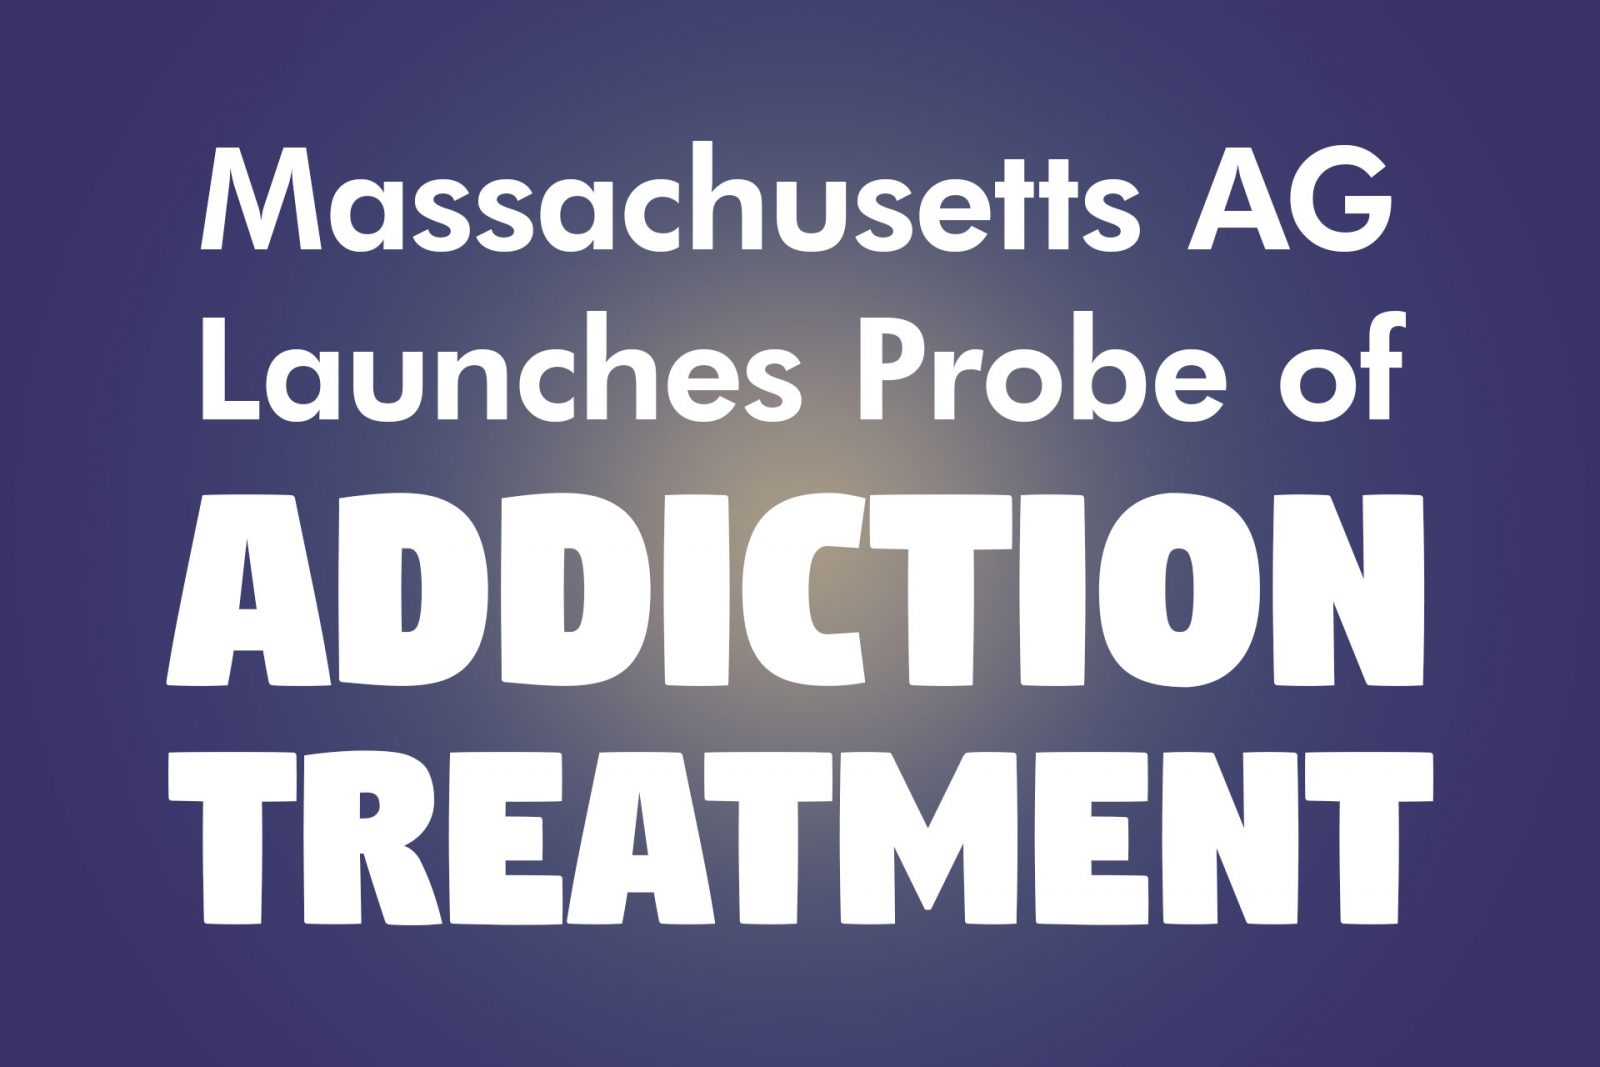 Massachusetts AG Launches Probe of Addiction Treatment